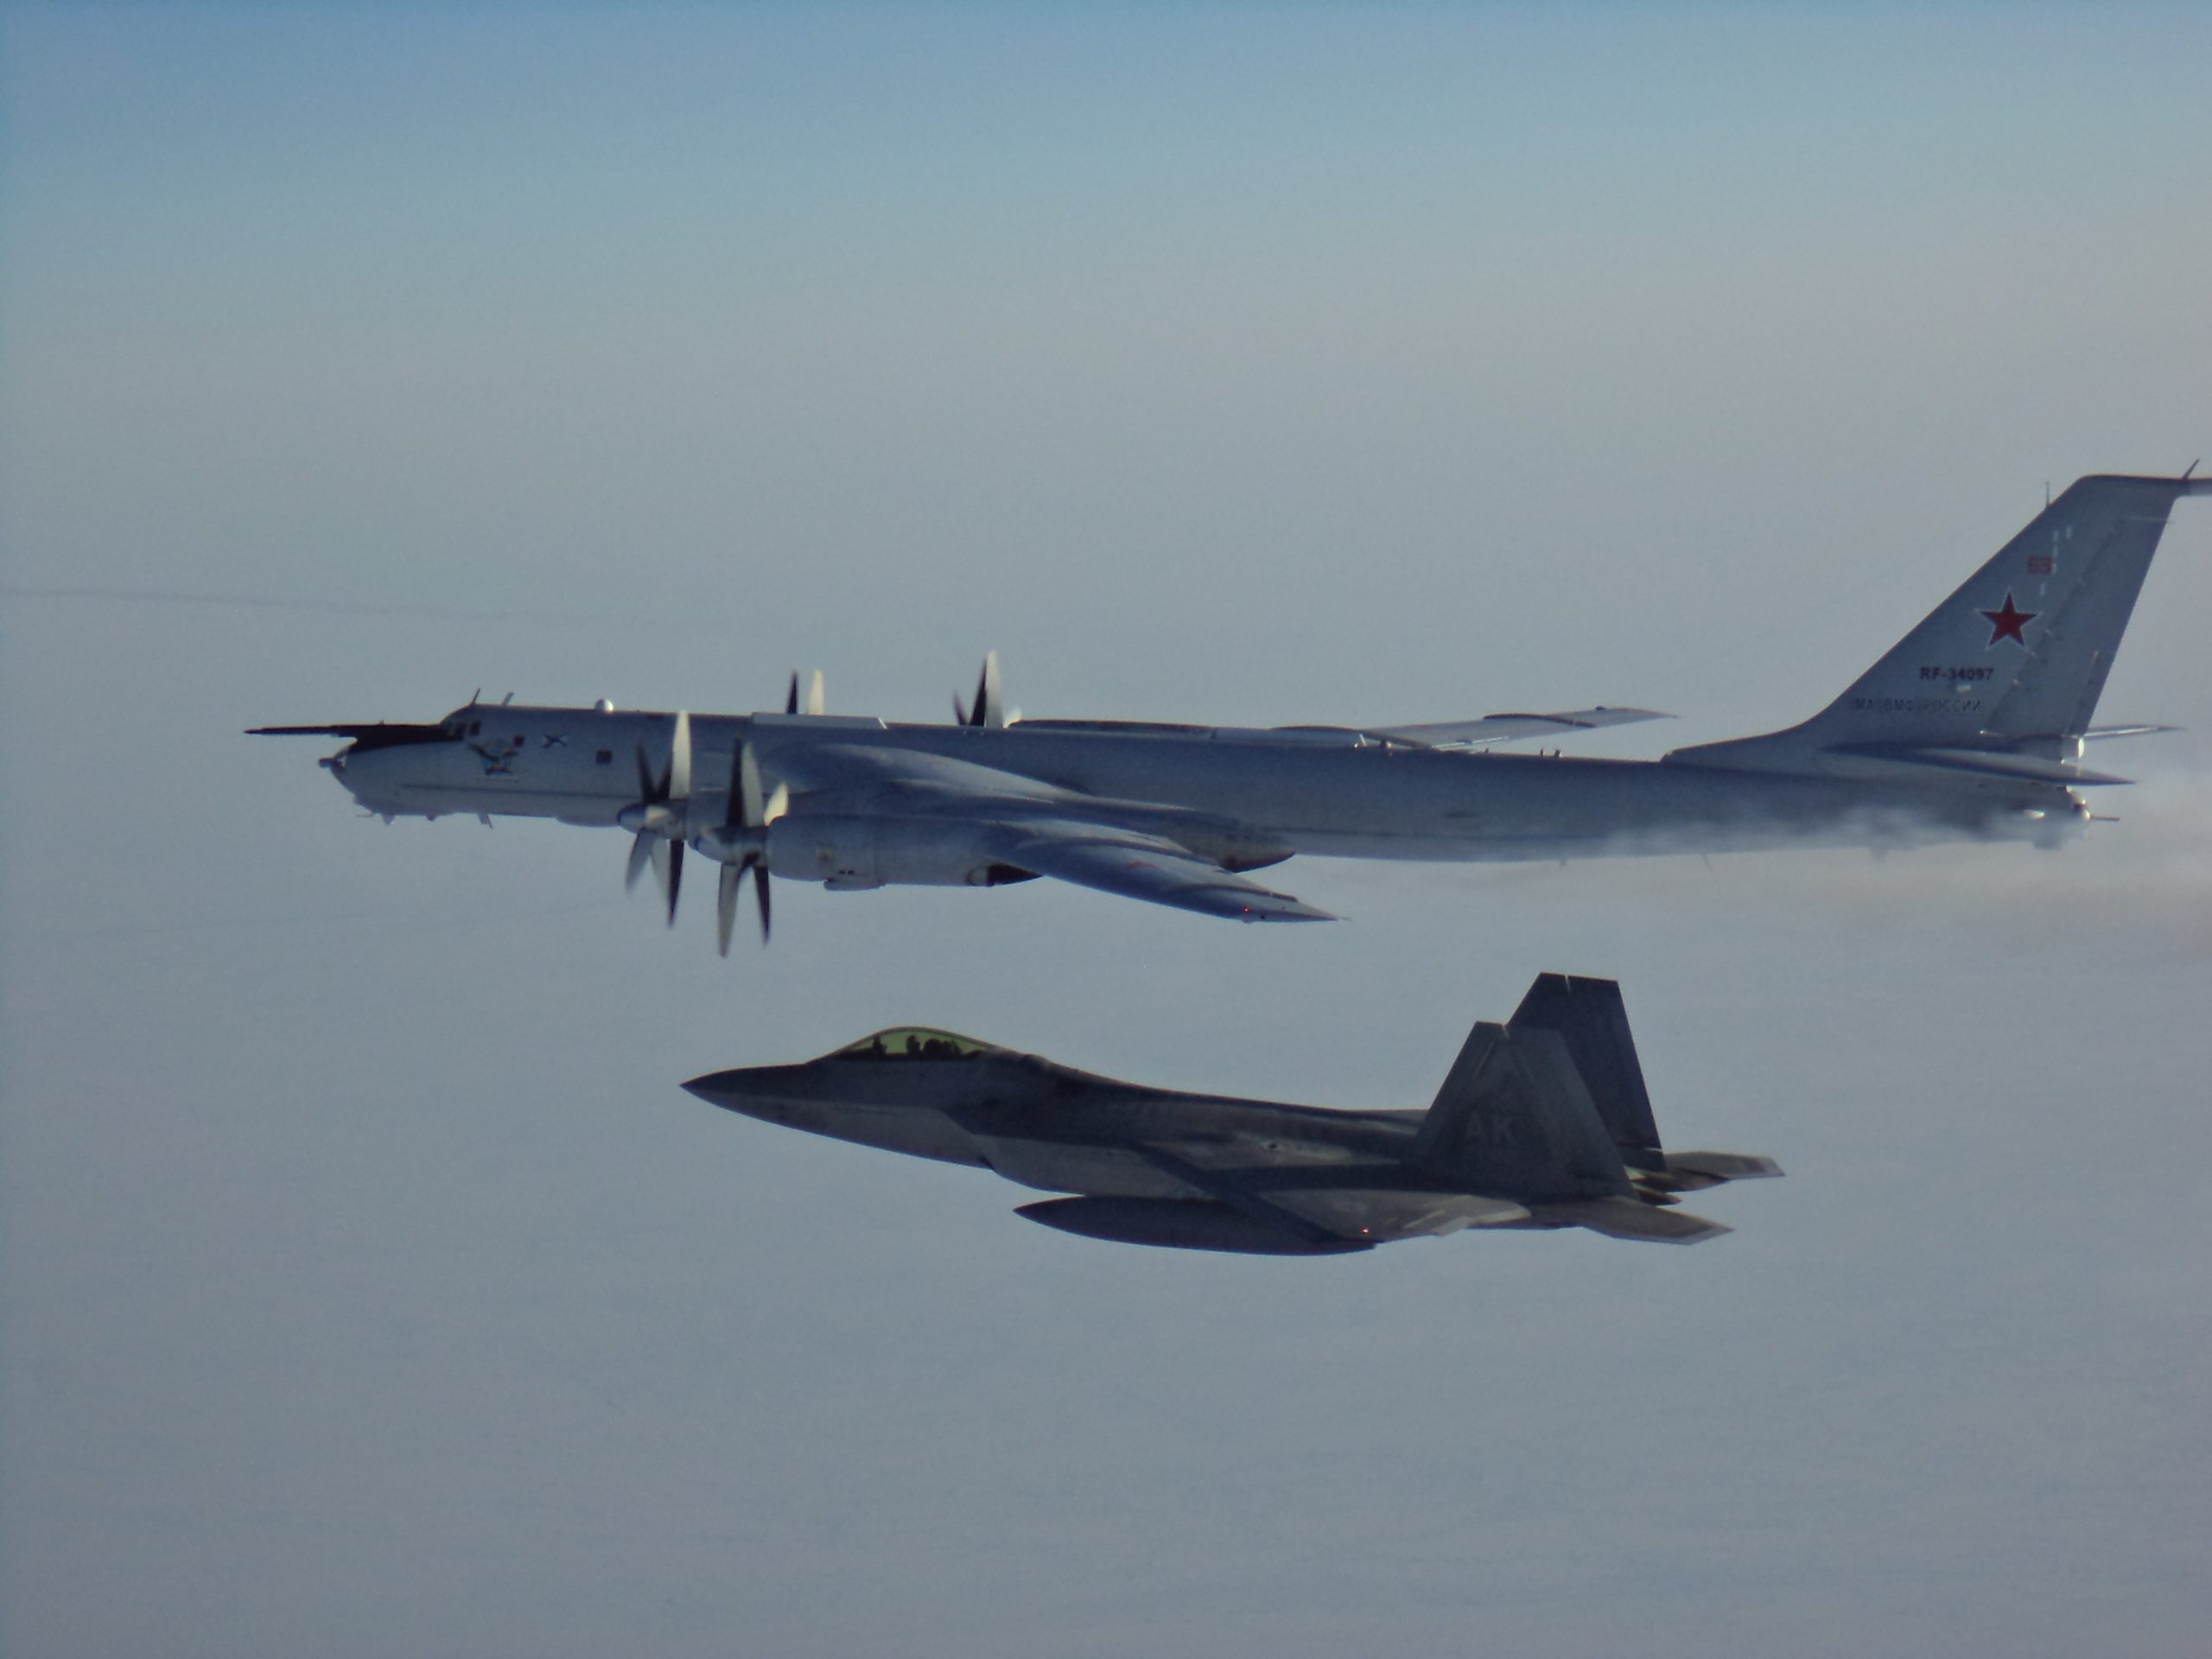 USA jet fighters help intercept Russian military planes approaching Alaska